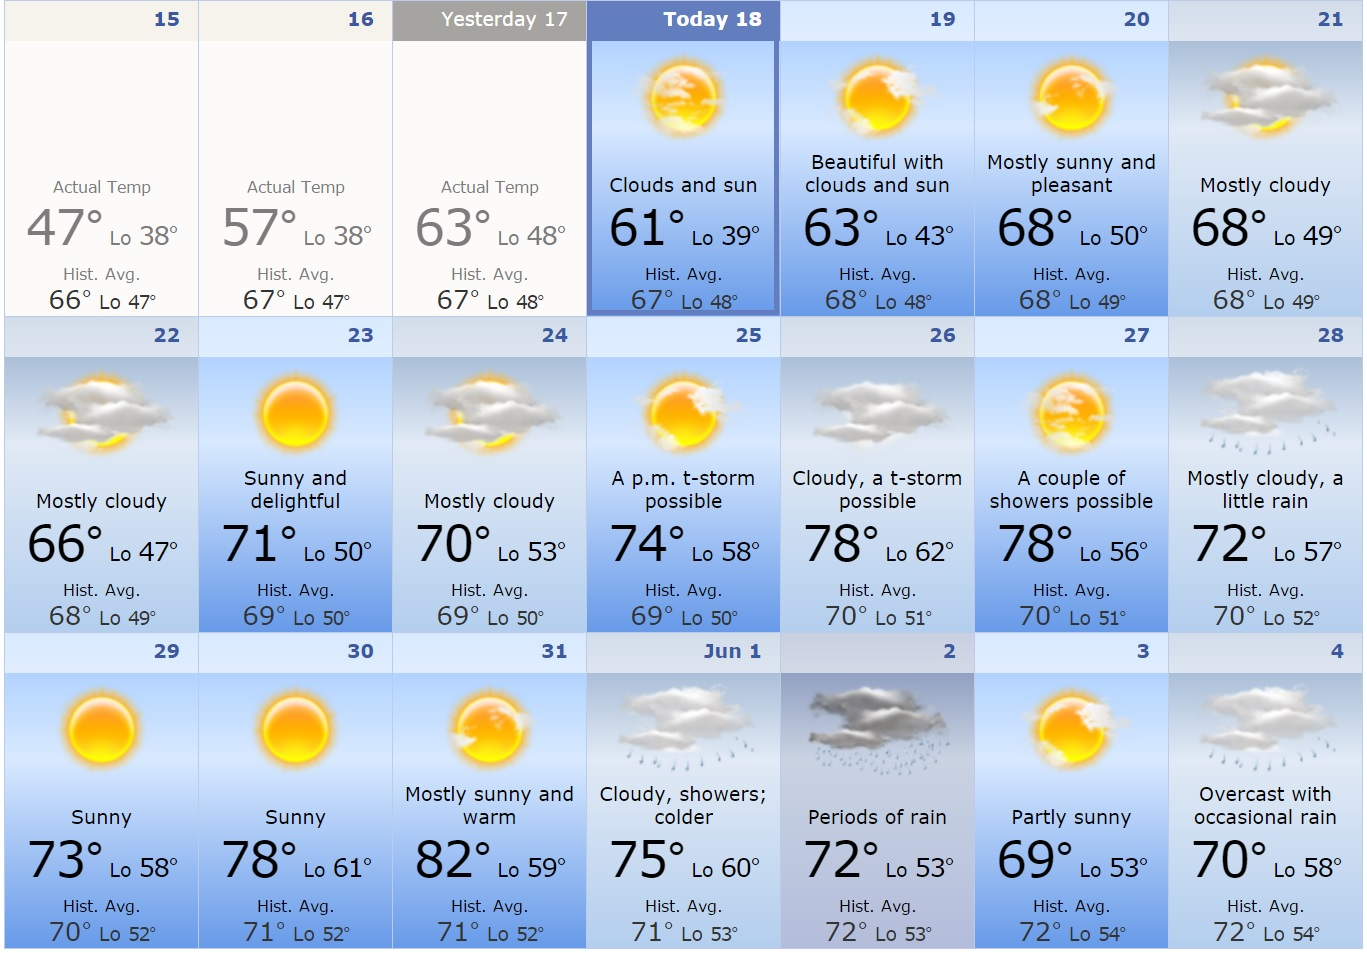 AccuWeather's extended forecast shows a sunny, 78° Memorial Day with 80s returning on May 31.